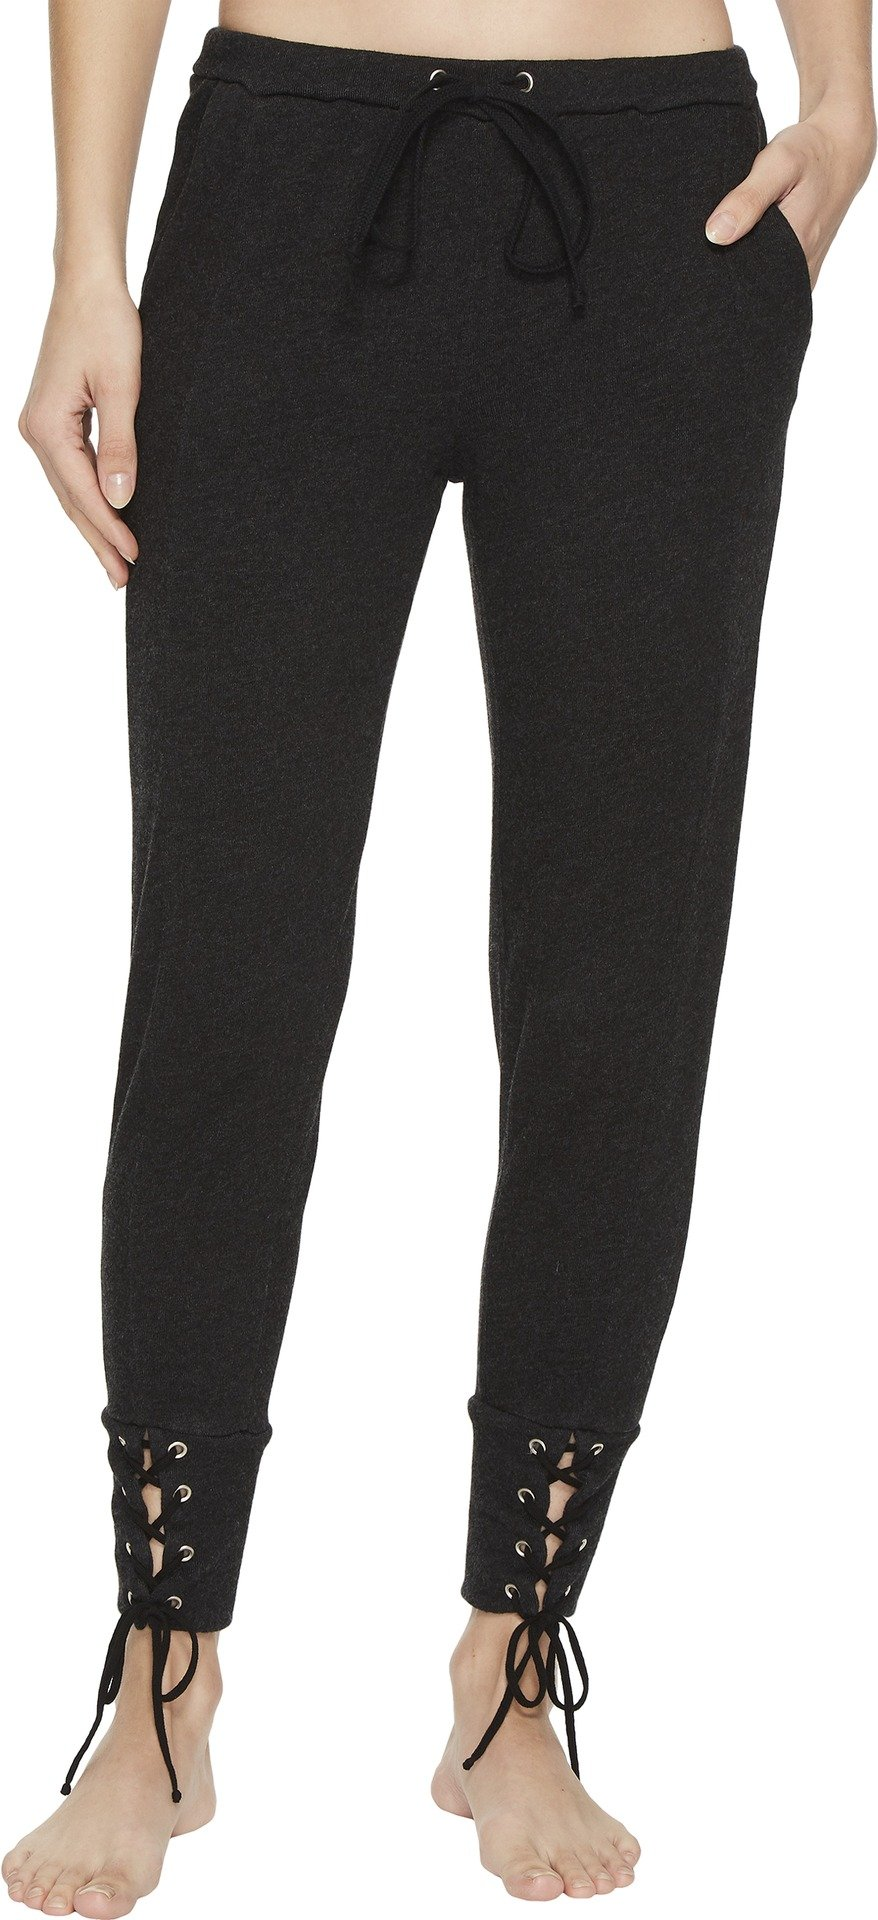 Hard Tail Women's Fitted Sweatpants With Lace-Up Cuff Black Small